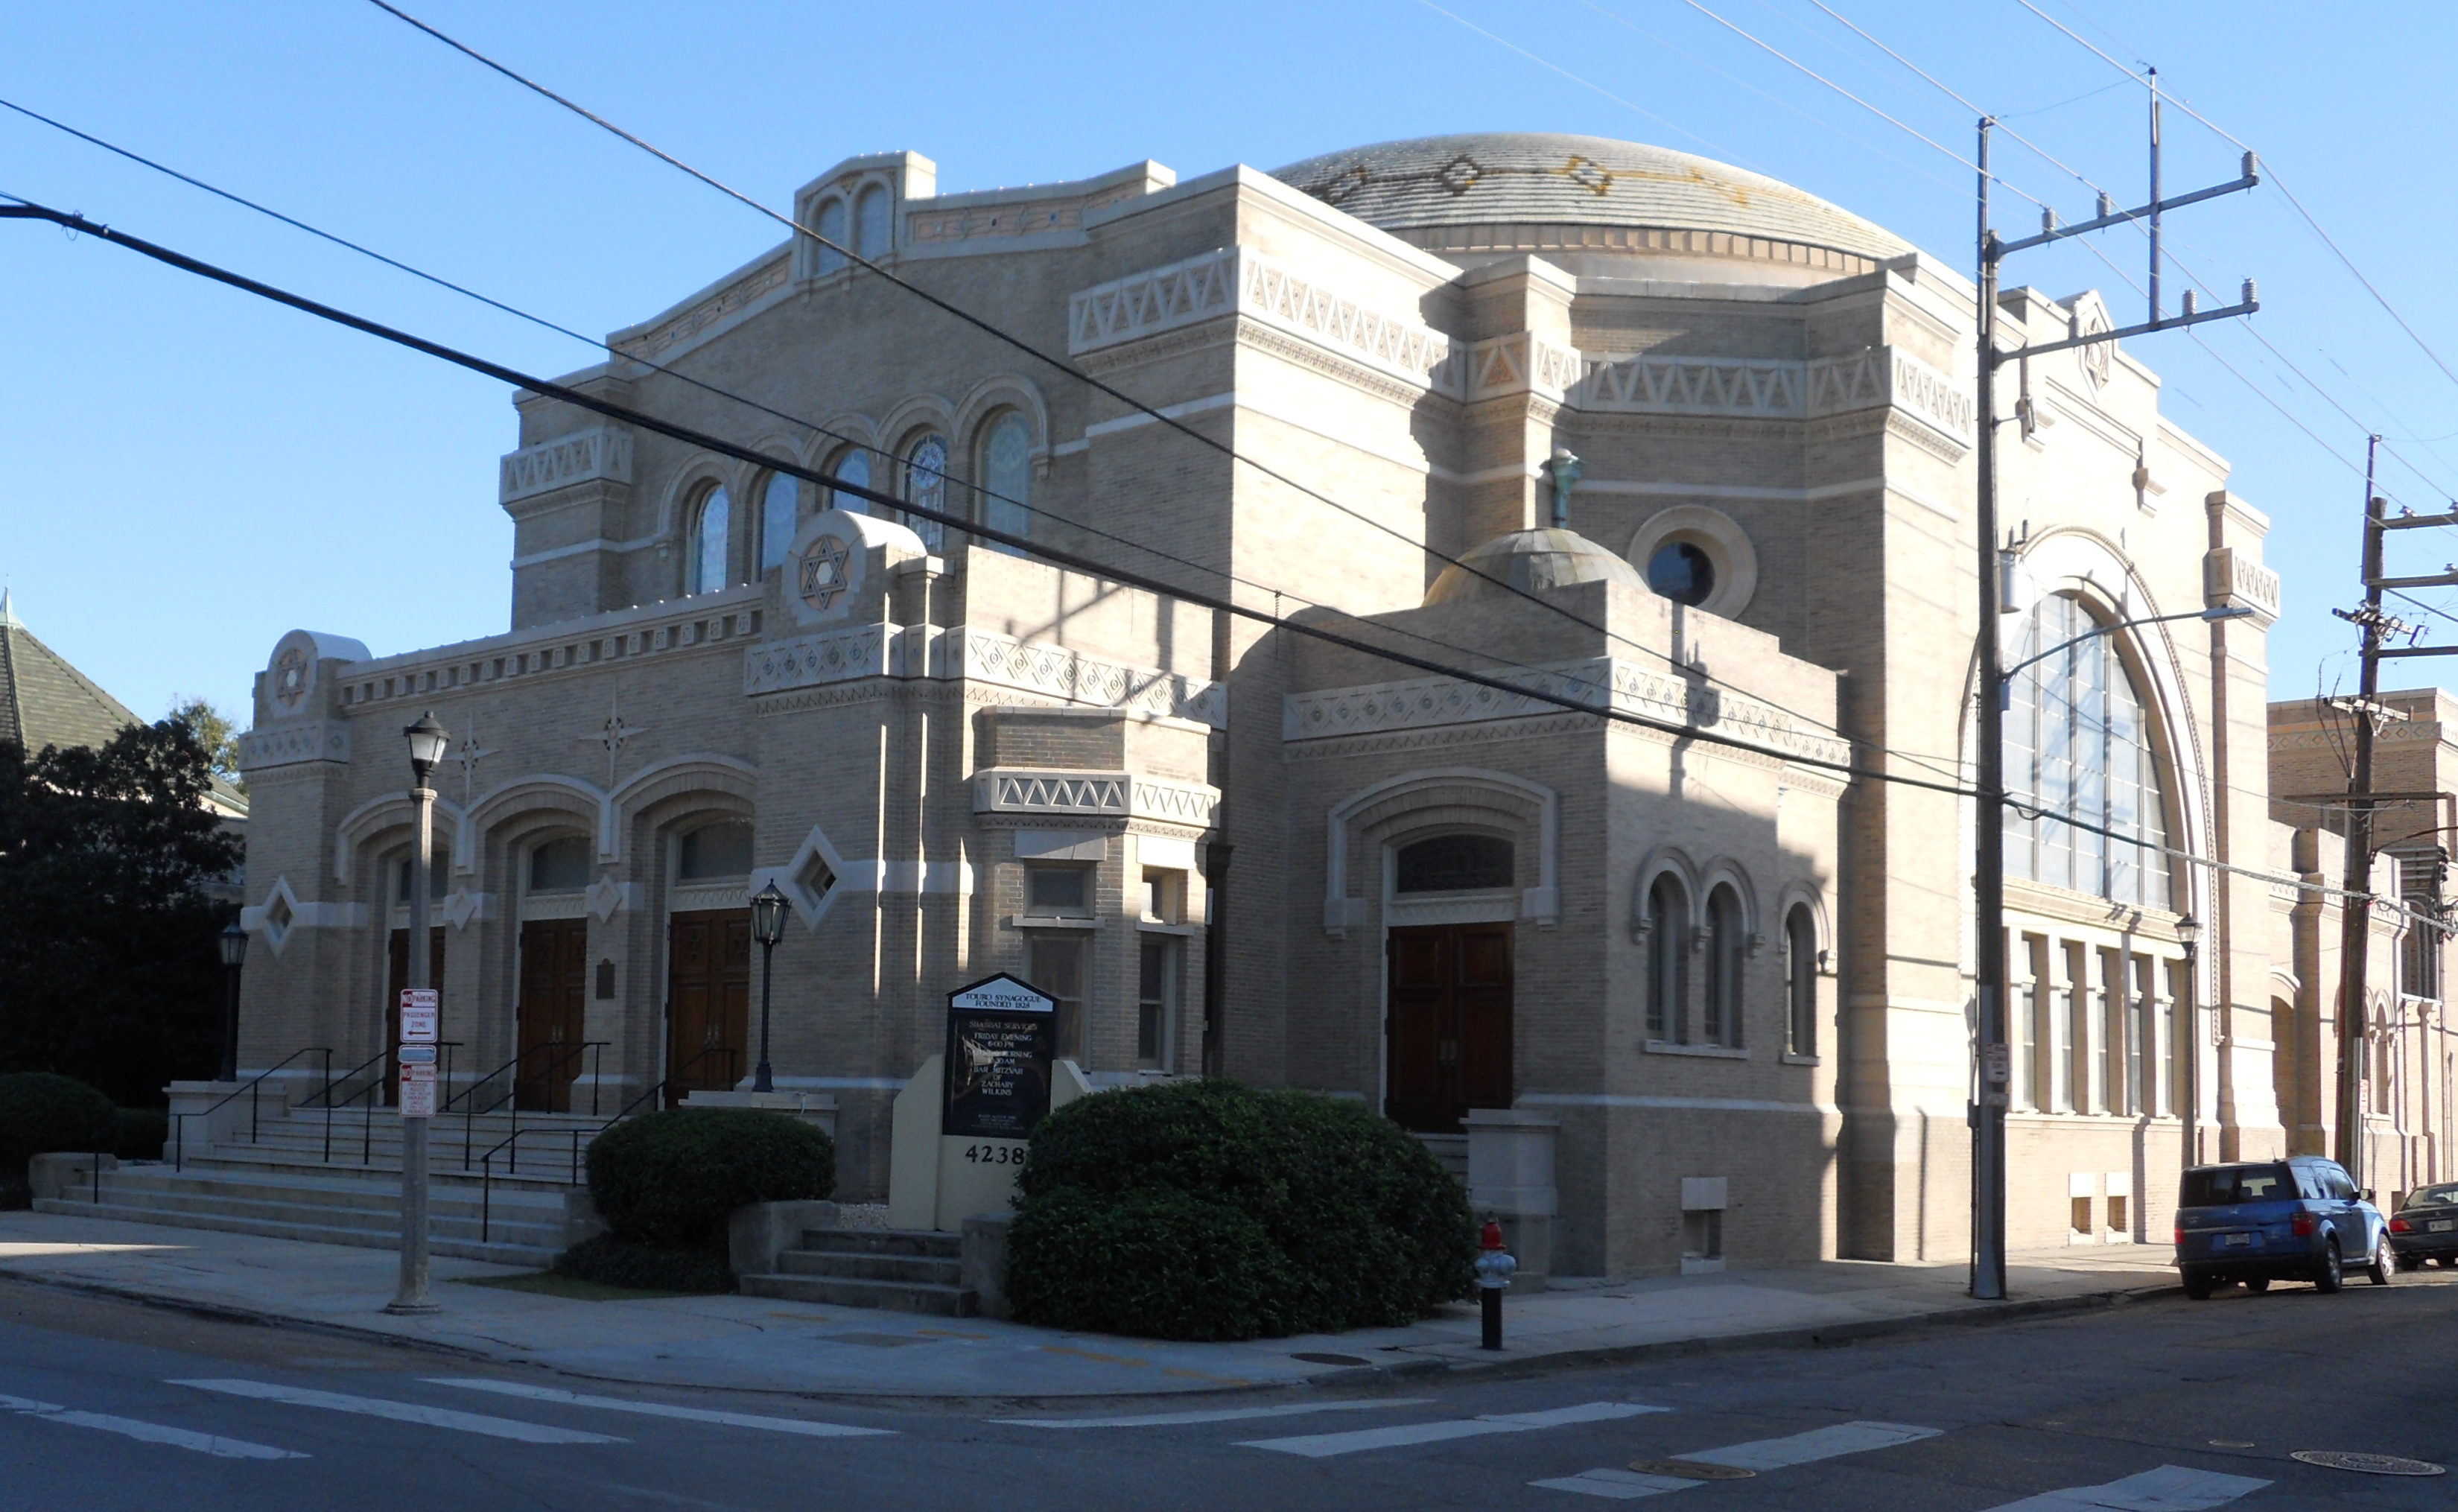 Southern Synagogue: Touro Synagogue, a brick building with rounded edges at street intersection